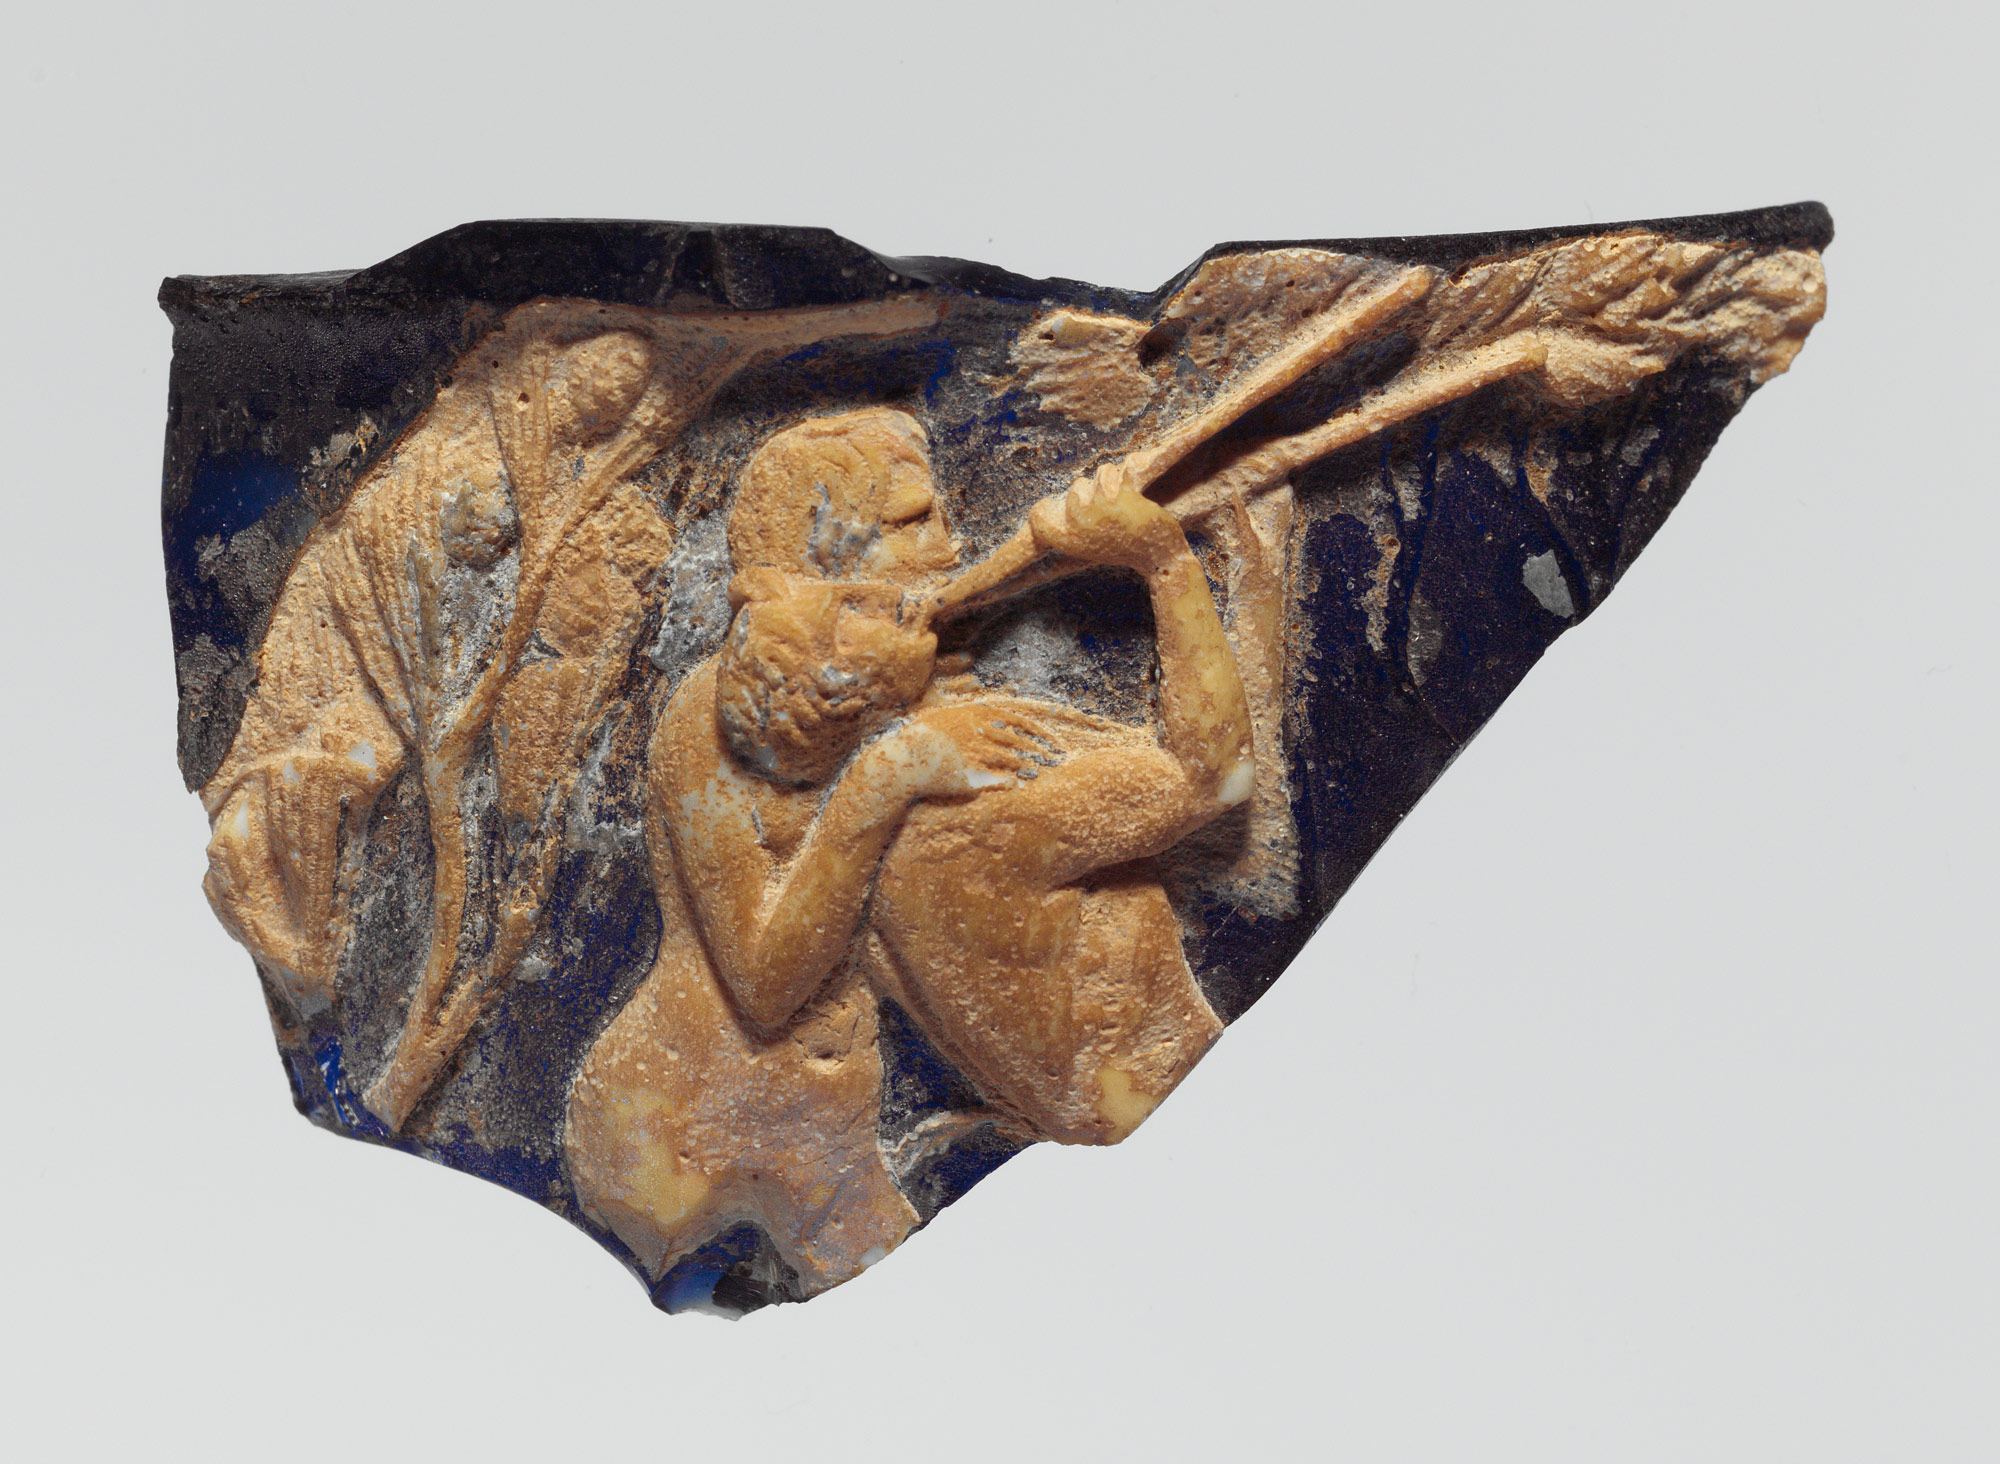 Glass cameo cup (scyphus) fragment